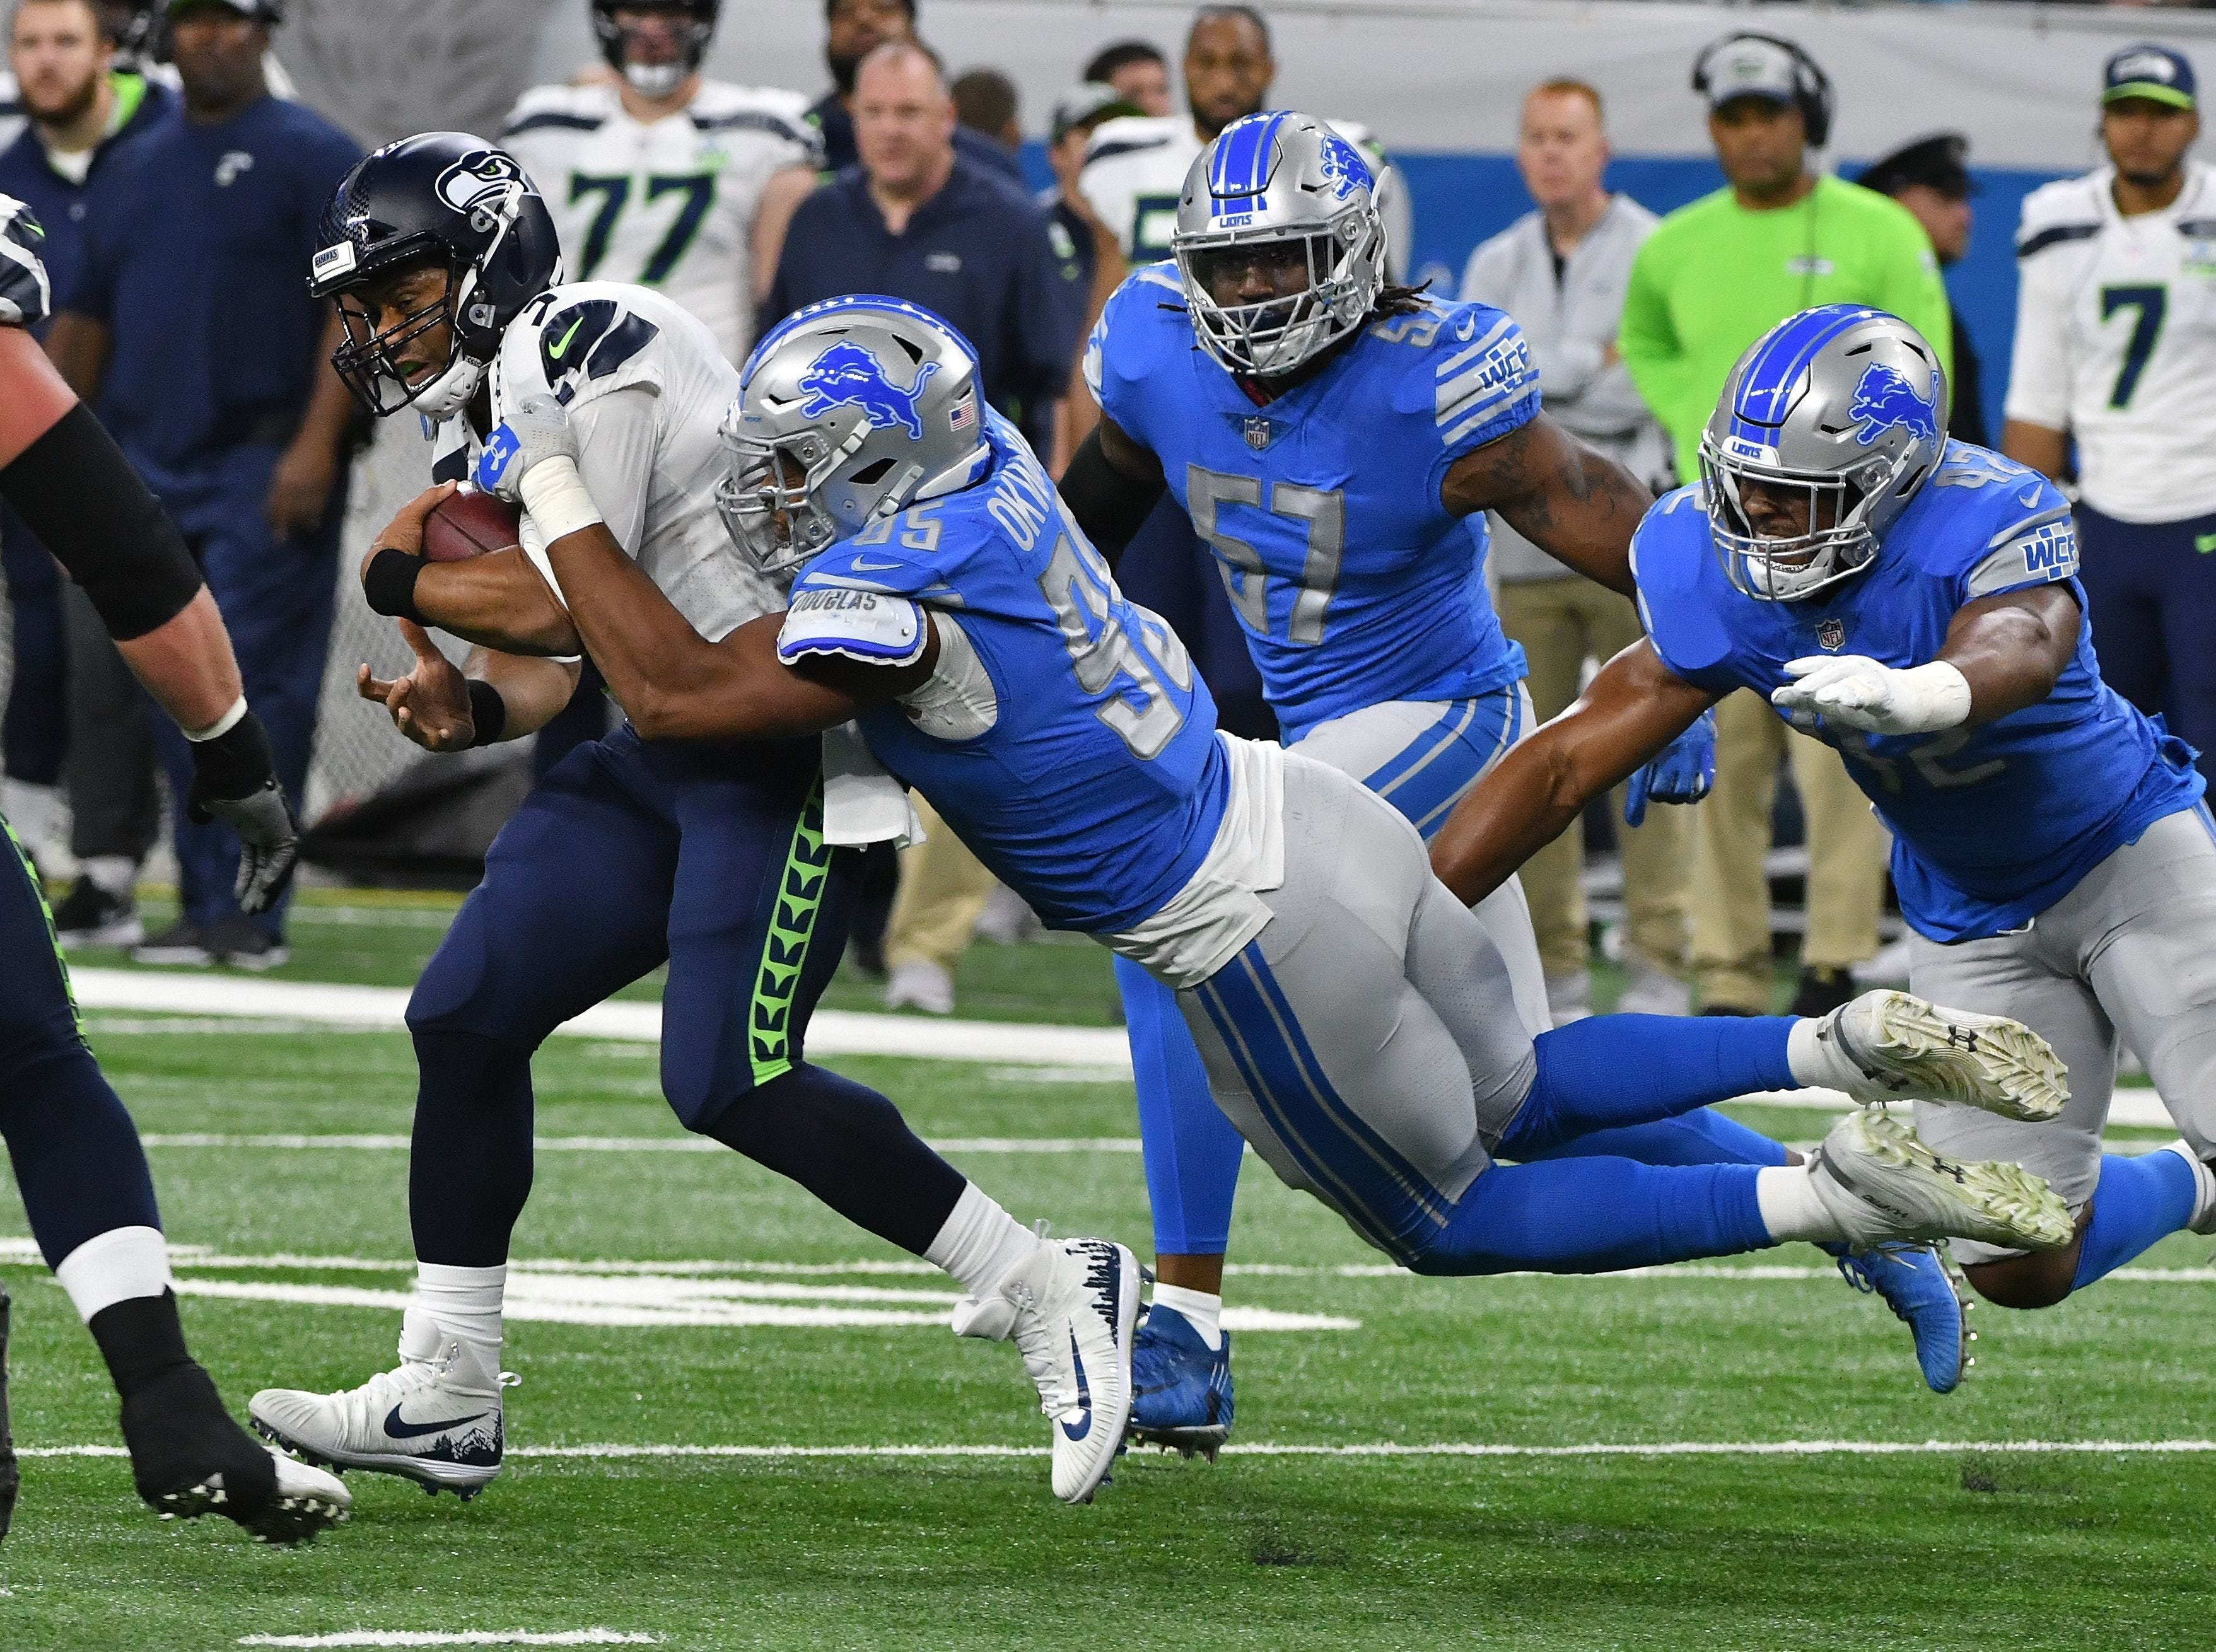 DE Romeo Okwara: A waiver claim who joined the roster just before the start of the season, Okwara has made the most of a tough situation, learning a new scheme on the fly, while playing a heavy workload compensating for Ziggy Ansah's absence. Okwara has been solid overall, racking up a career-high 5.0 sacks to go with a handful of run stops. Opponents have occasionally had success running to his edge, but overall, it's tough to expect much more given the timing of his addition. Grade: B+